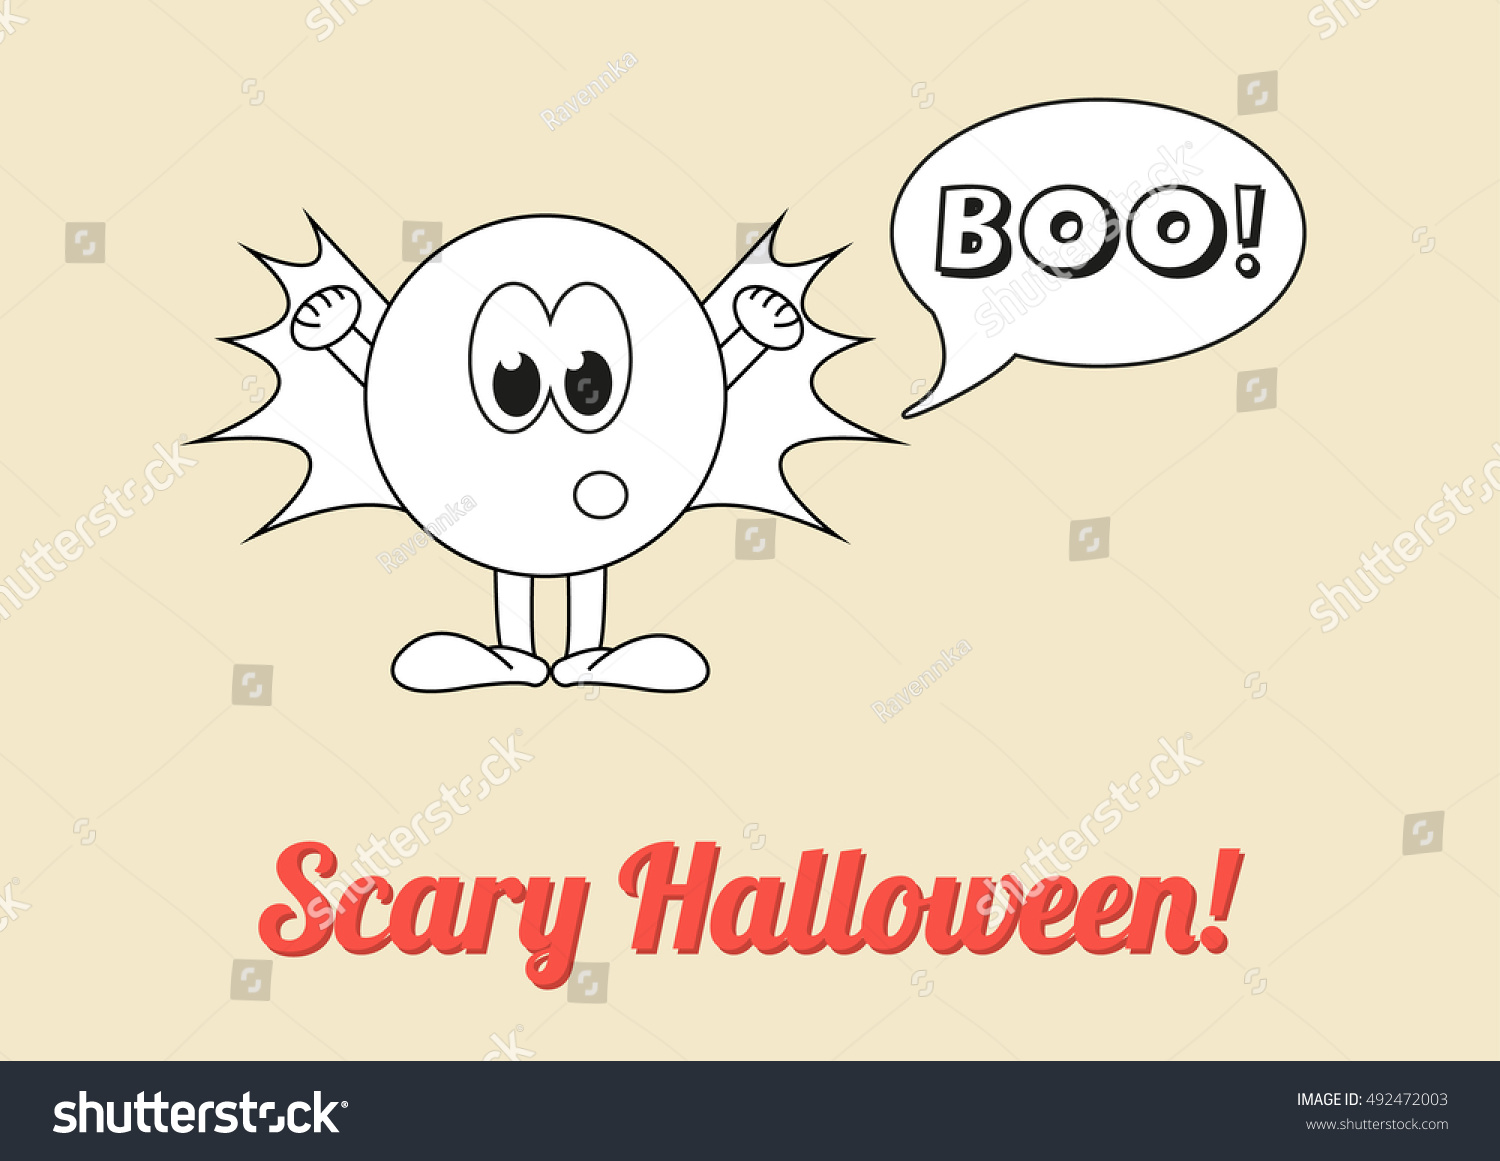 Seasonal Poster   Scary Halloween With White Ghost Saying Boo! Vintage  Coloring